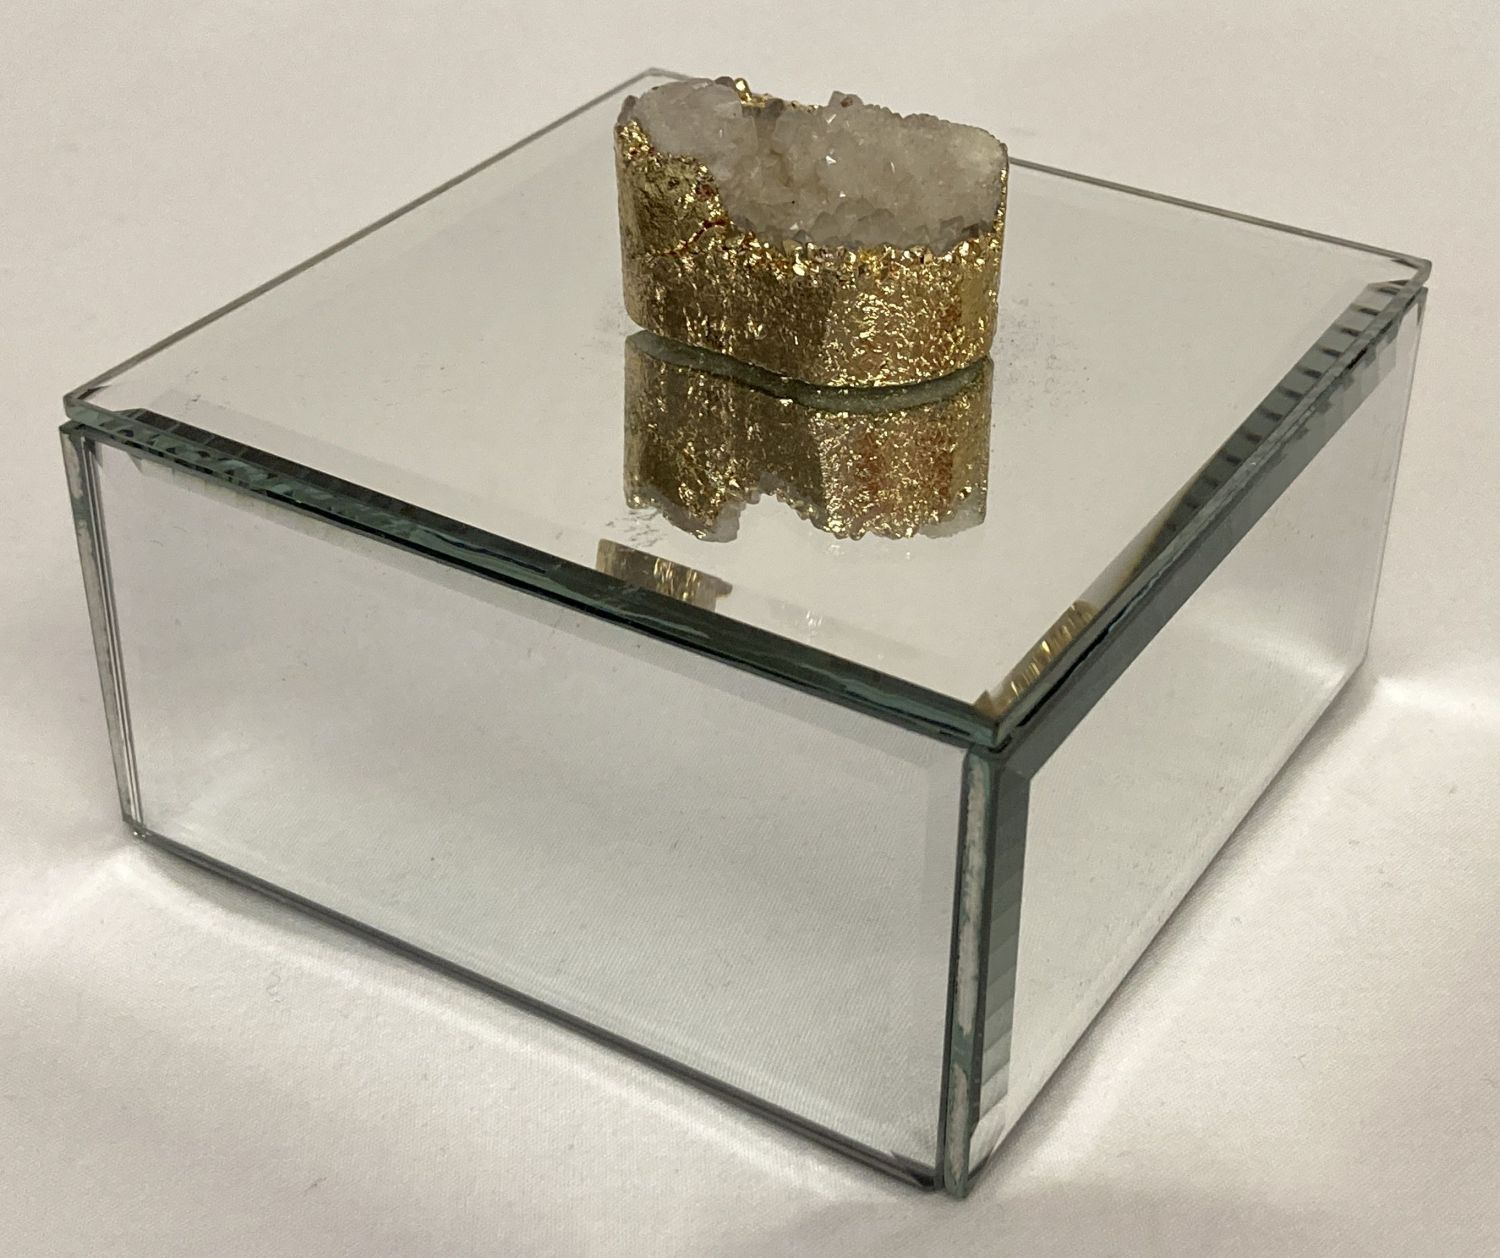 A modern mirrored jewellery box with druzy stone set as lid handle.